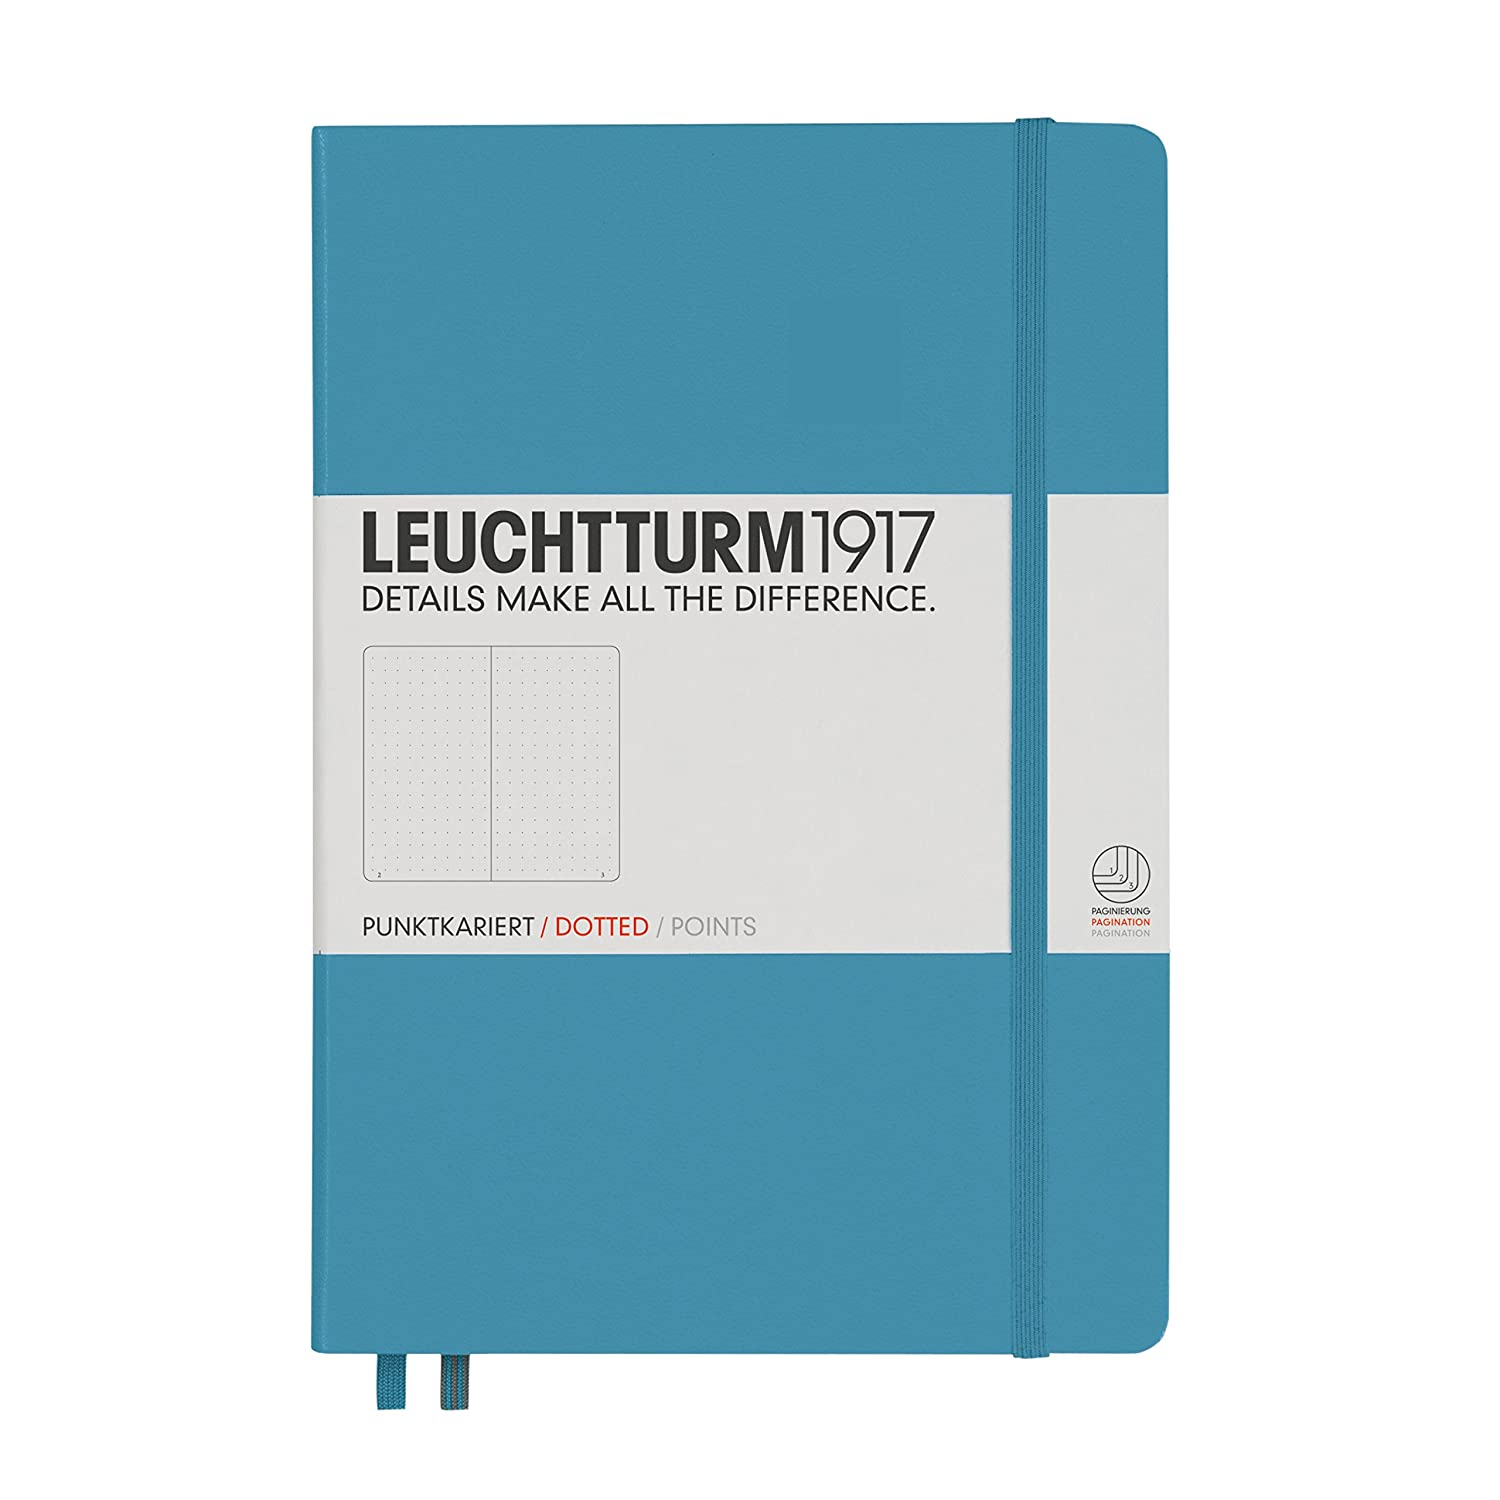 Leuchtturm1917 Bullet Journal - Nordic Blue